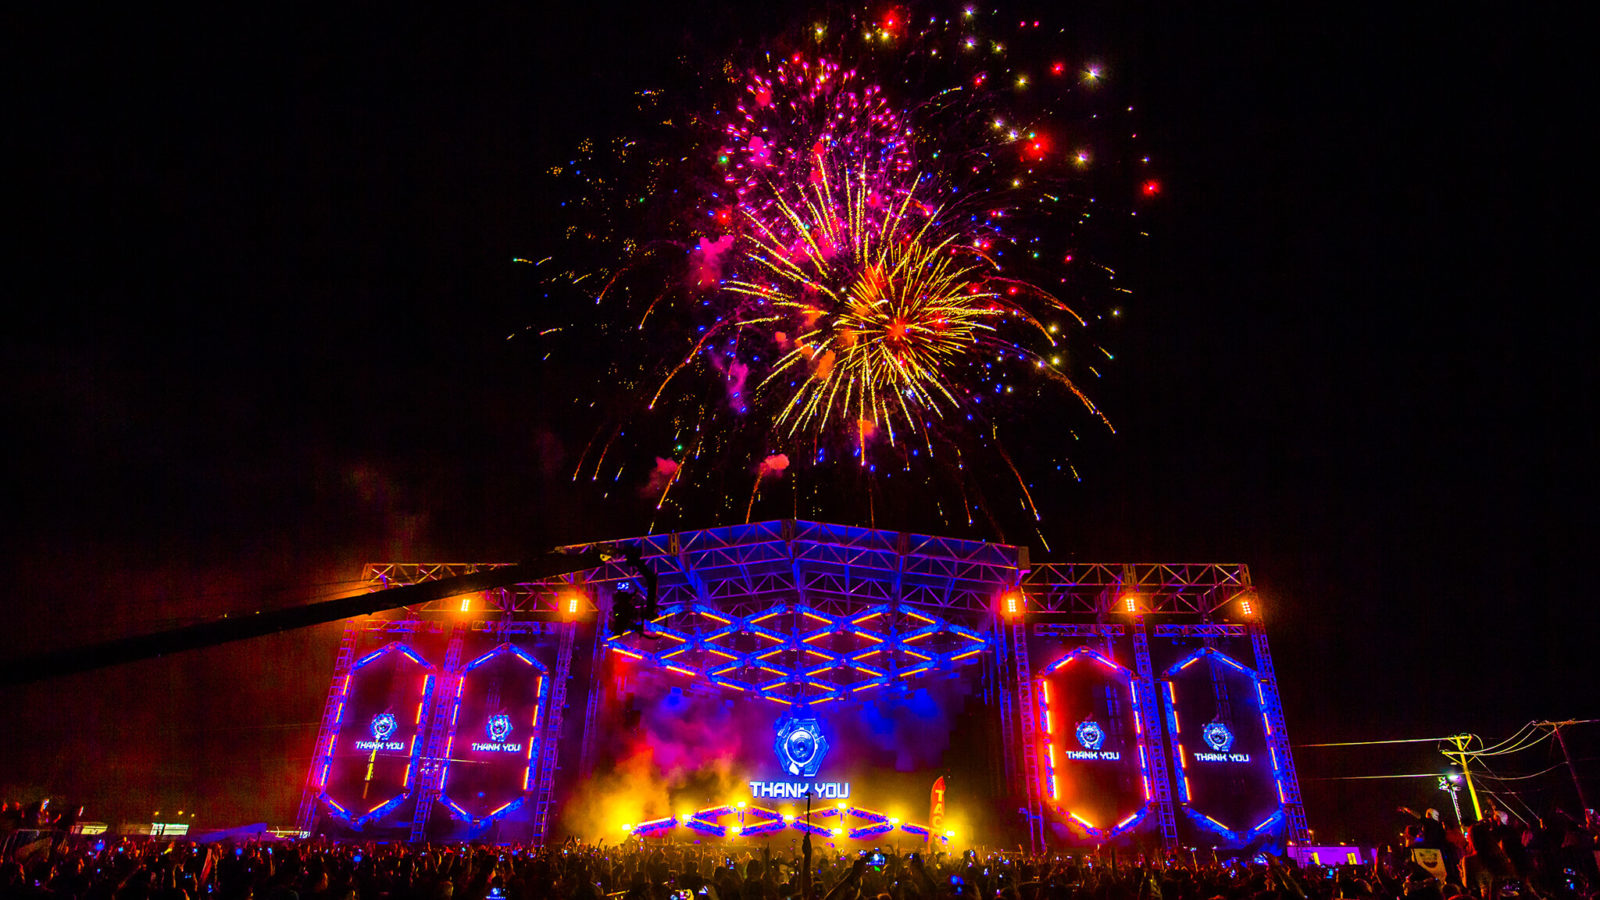 Fireworks over main stage at Sun City Music Festival 2015